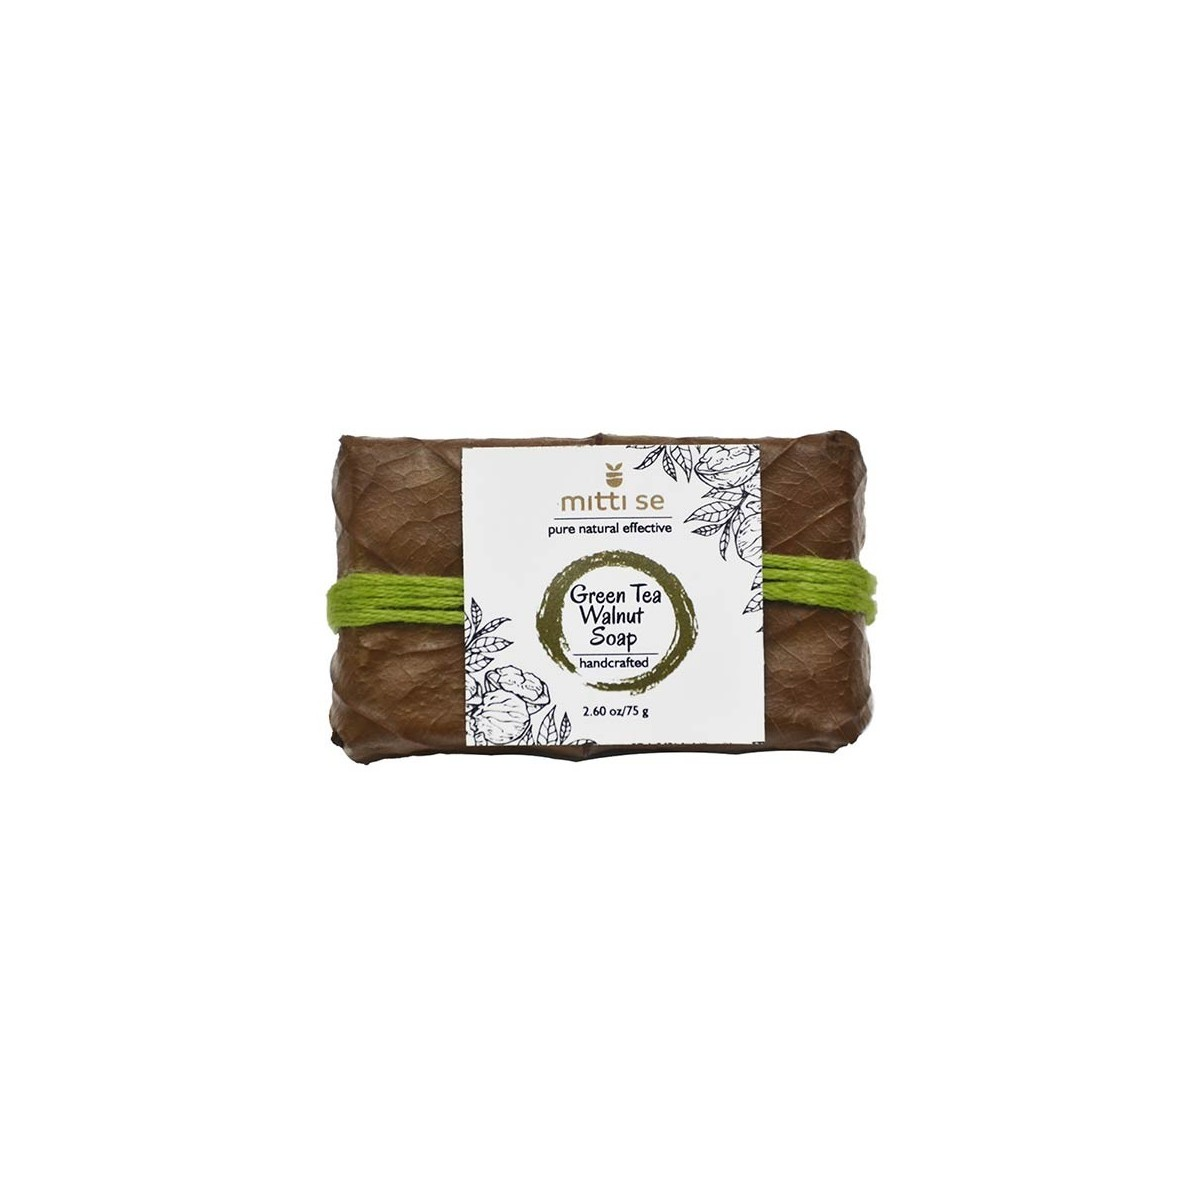 Mitti Se Green Tea & Walnut Soap